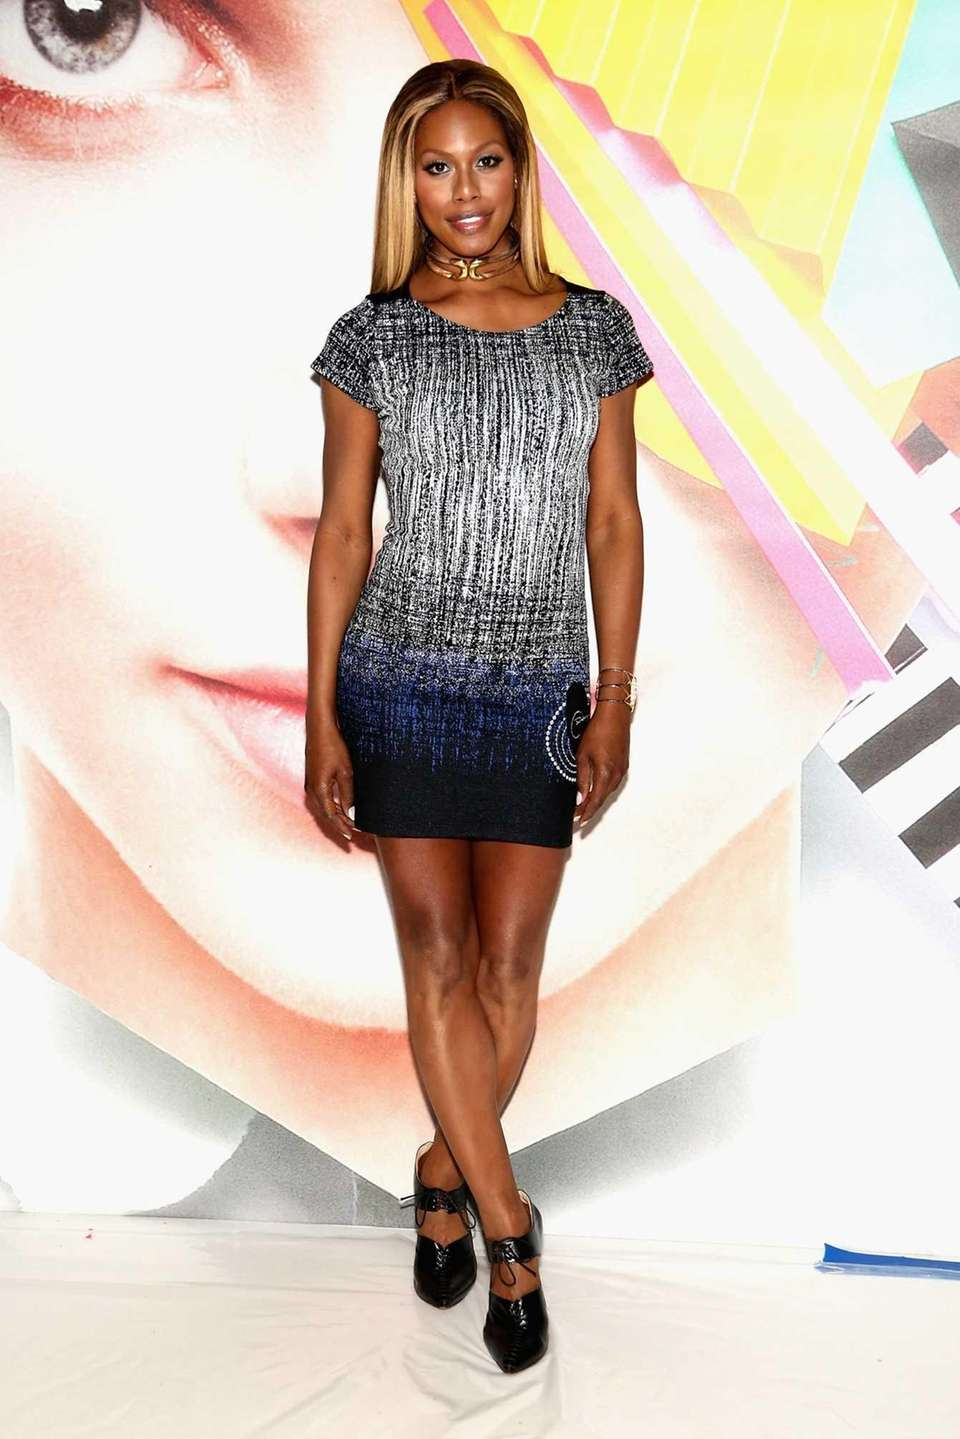 Actress Laverne Cox attends the Desigual show during